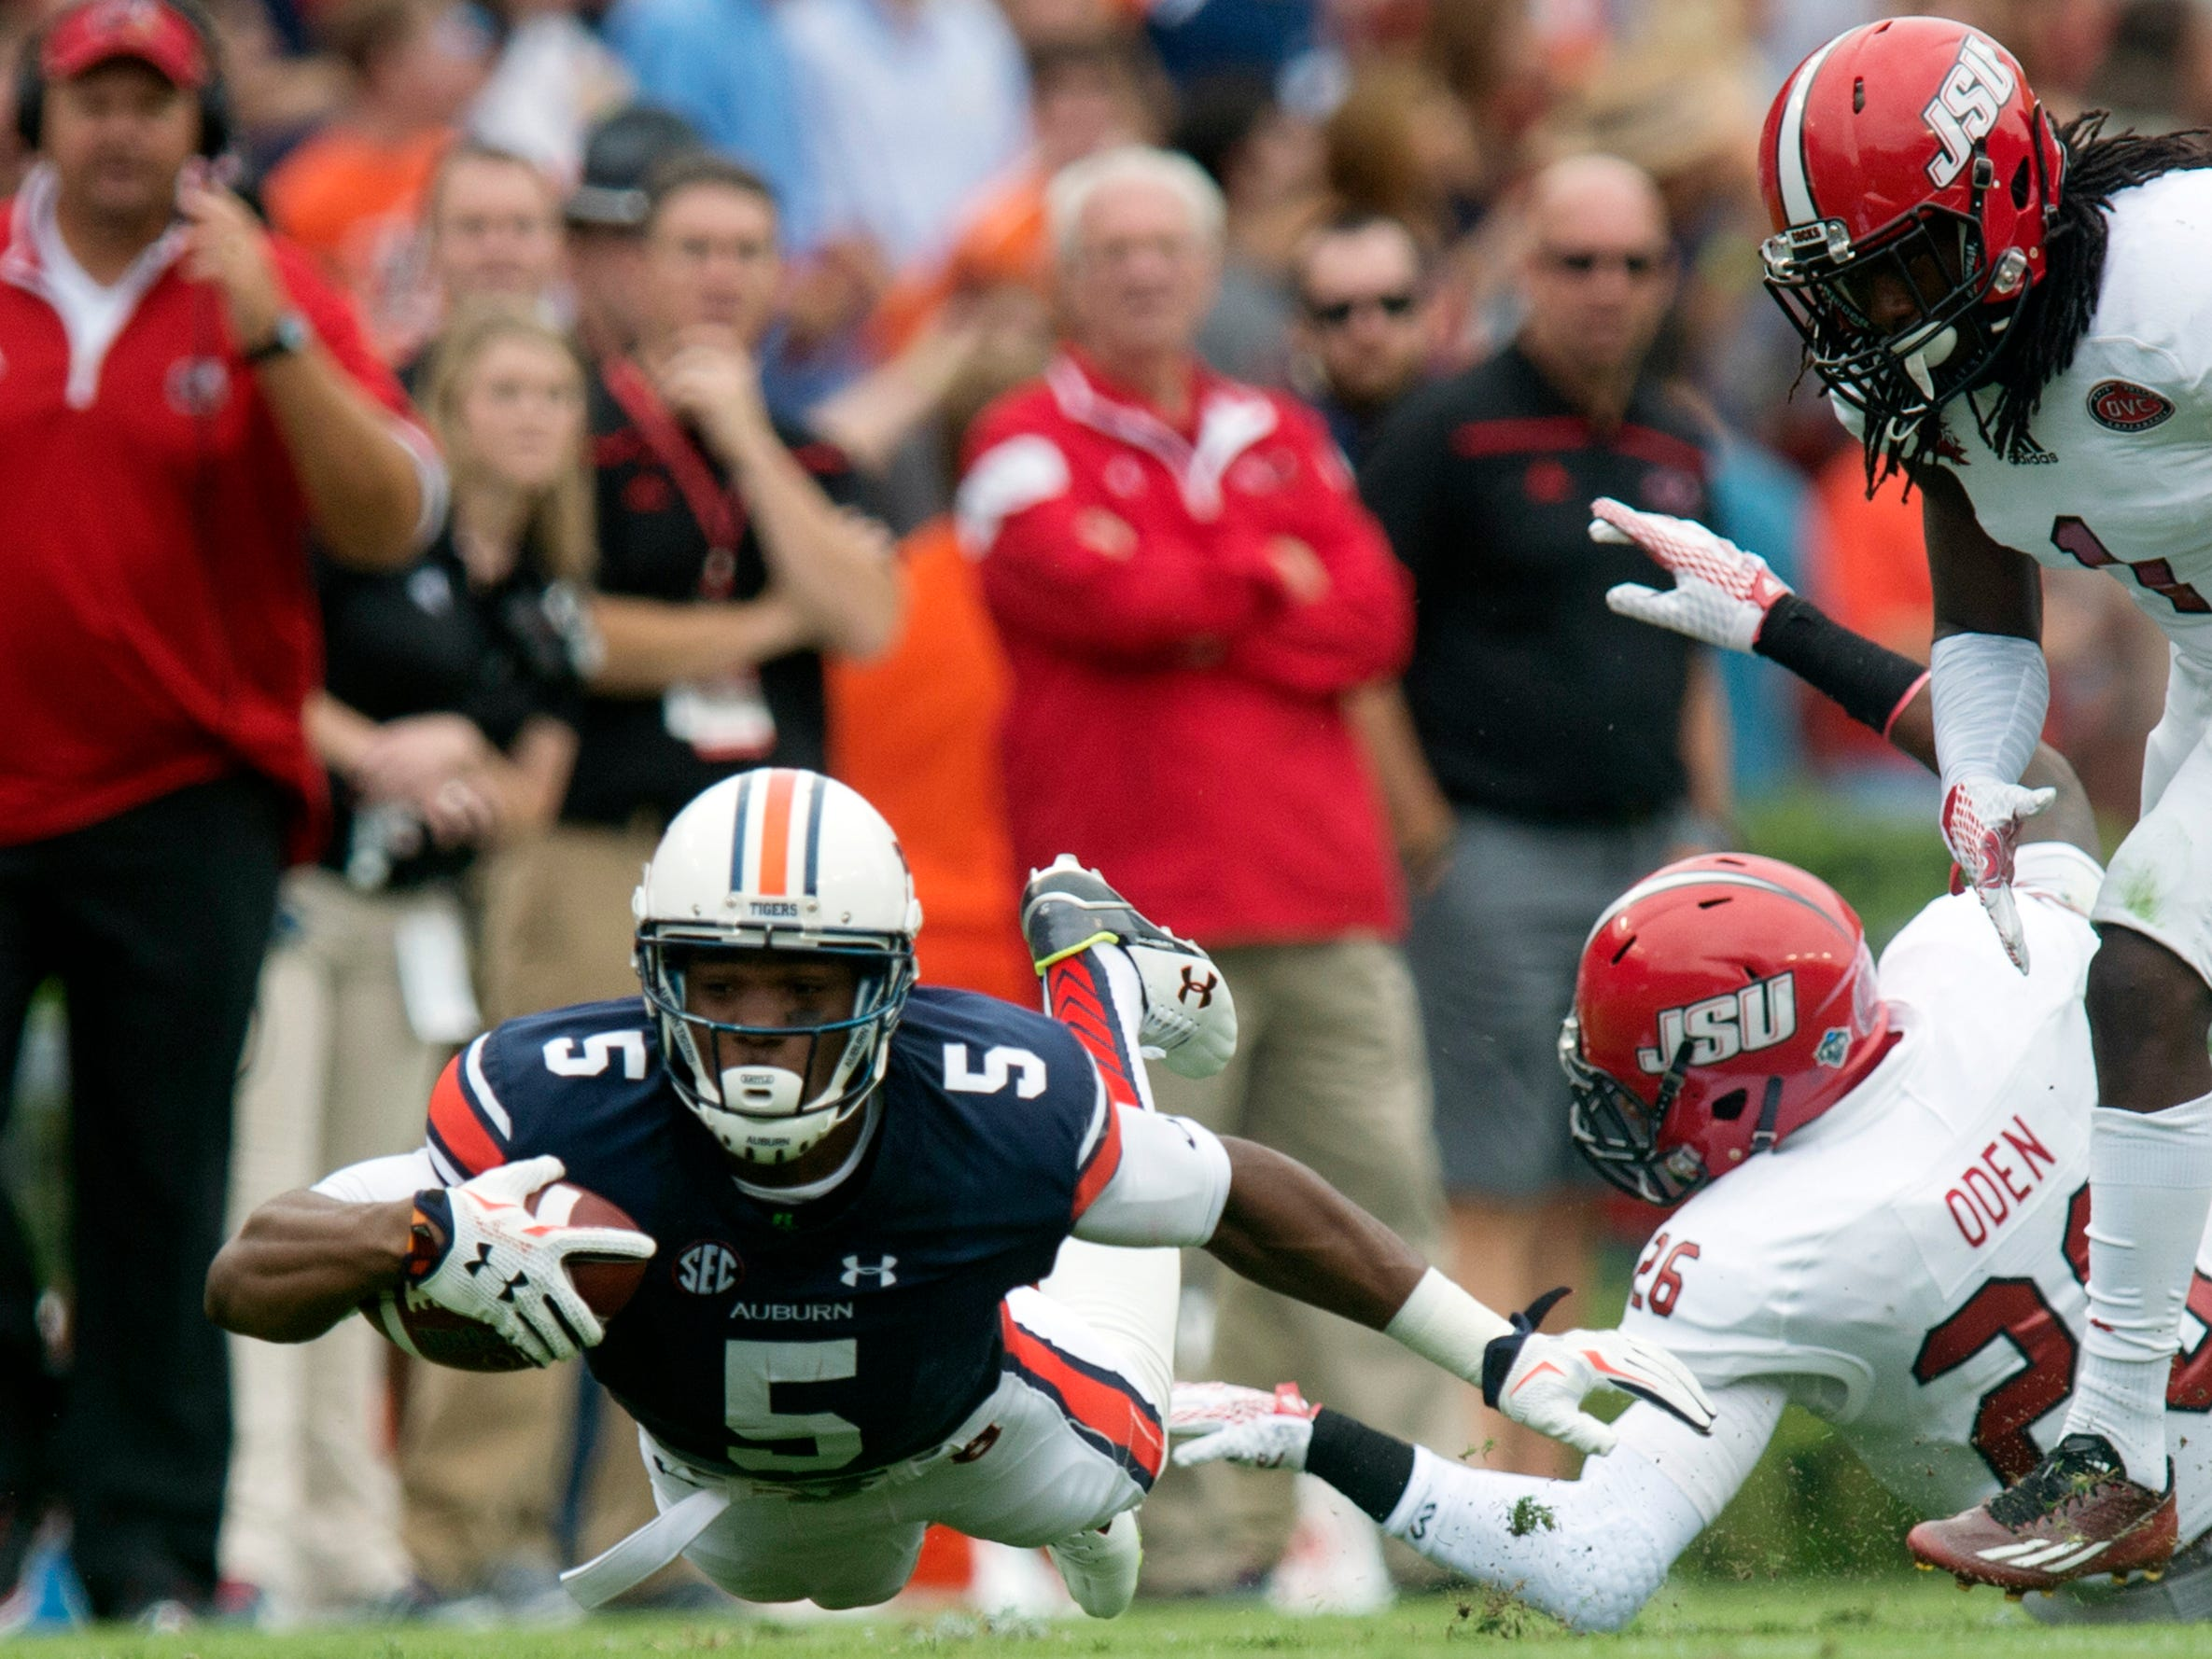 Auburn wide receiver Ricardo Louis (5) dives forward as Jacksonville State safety Santavious Oden (26) tackles him during the first half of an NCAA college football game, Saturday, Sept. 12, 2015, in at Jordan-Hare Stadium in Auburn, Ala. (Albert Cesare/The Montgomery Advertiser via AP) NO SALES; MANDATORY CREDIT